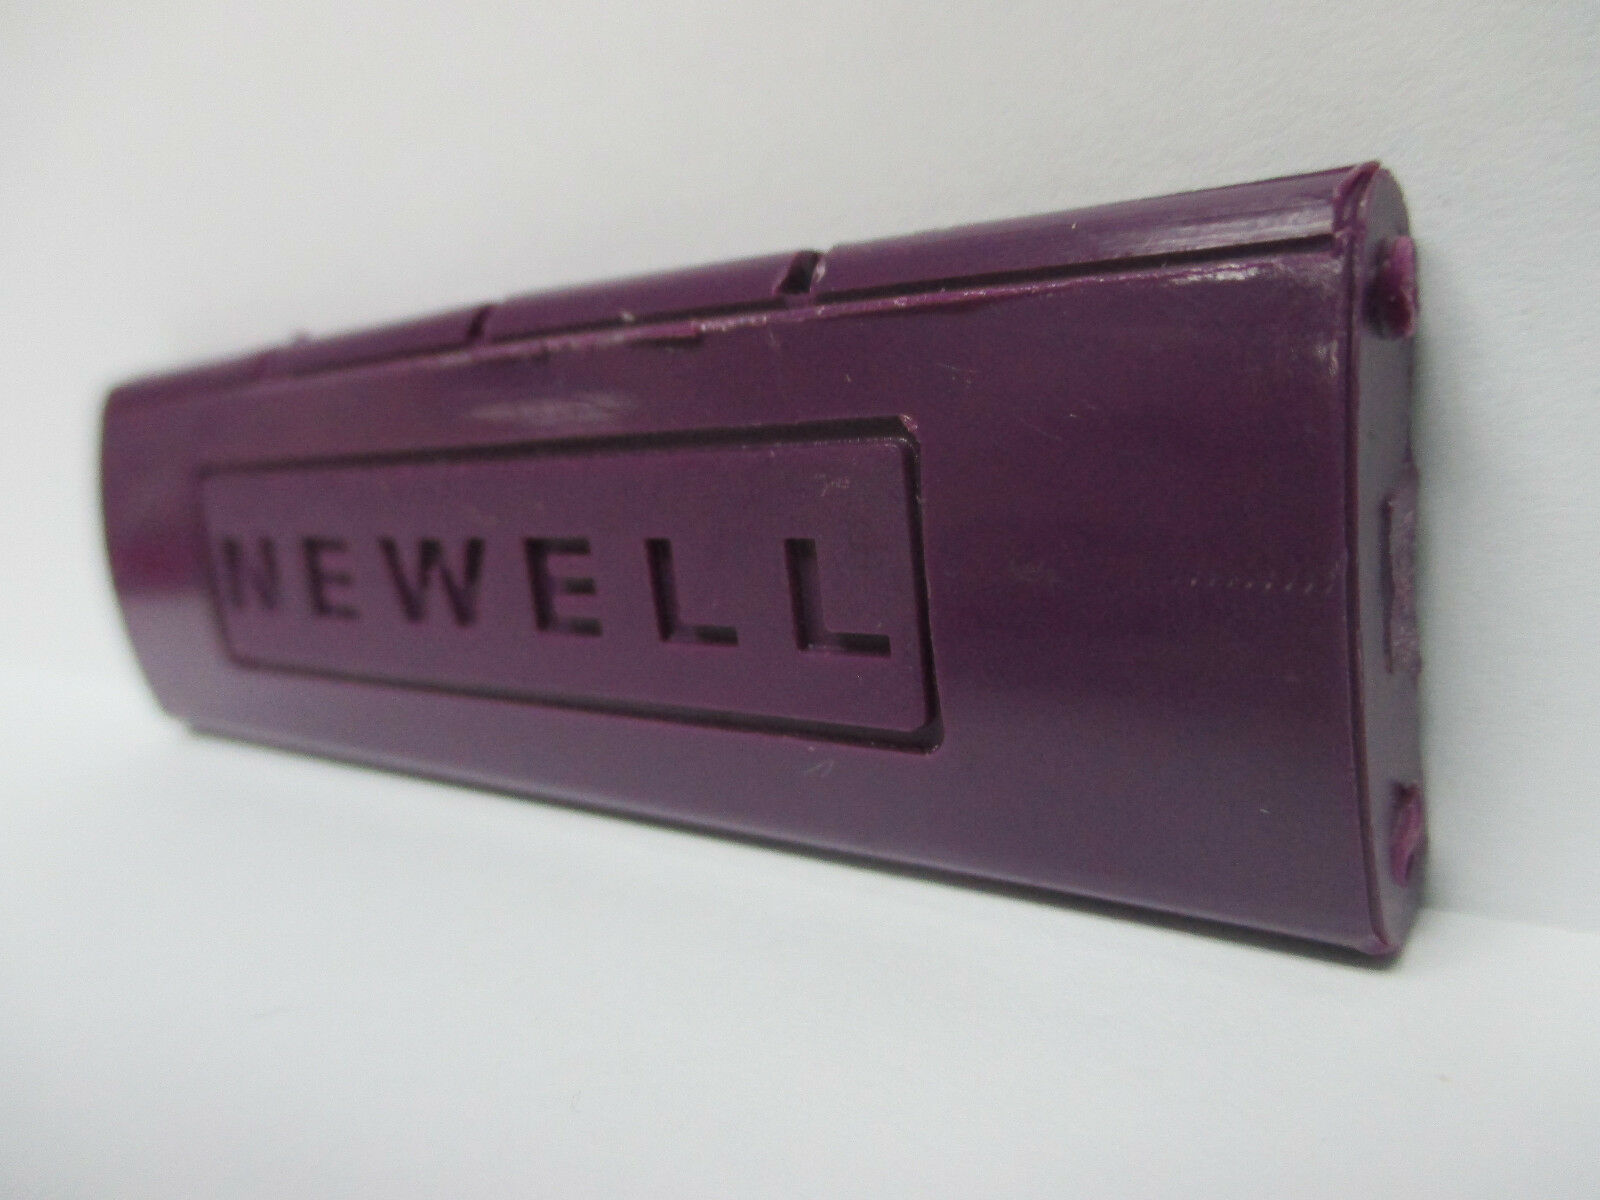 USED NEWELL CONVENTIONAL REEL PART - PR 550 4.6 - Spacer Bar  I Threaded Purple